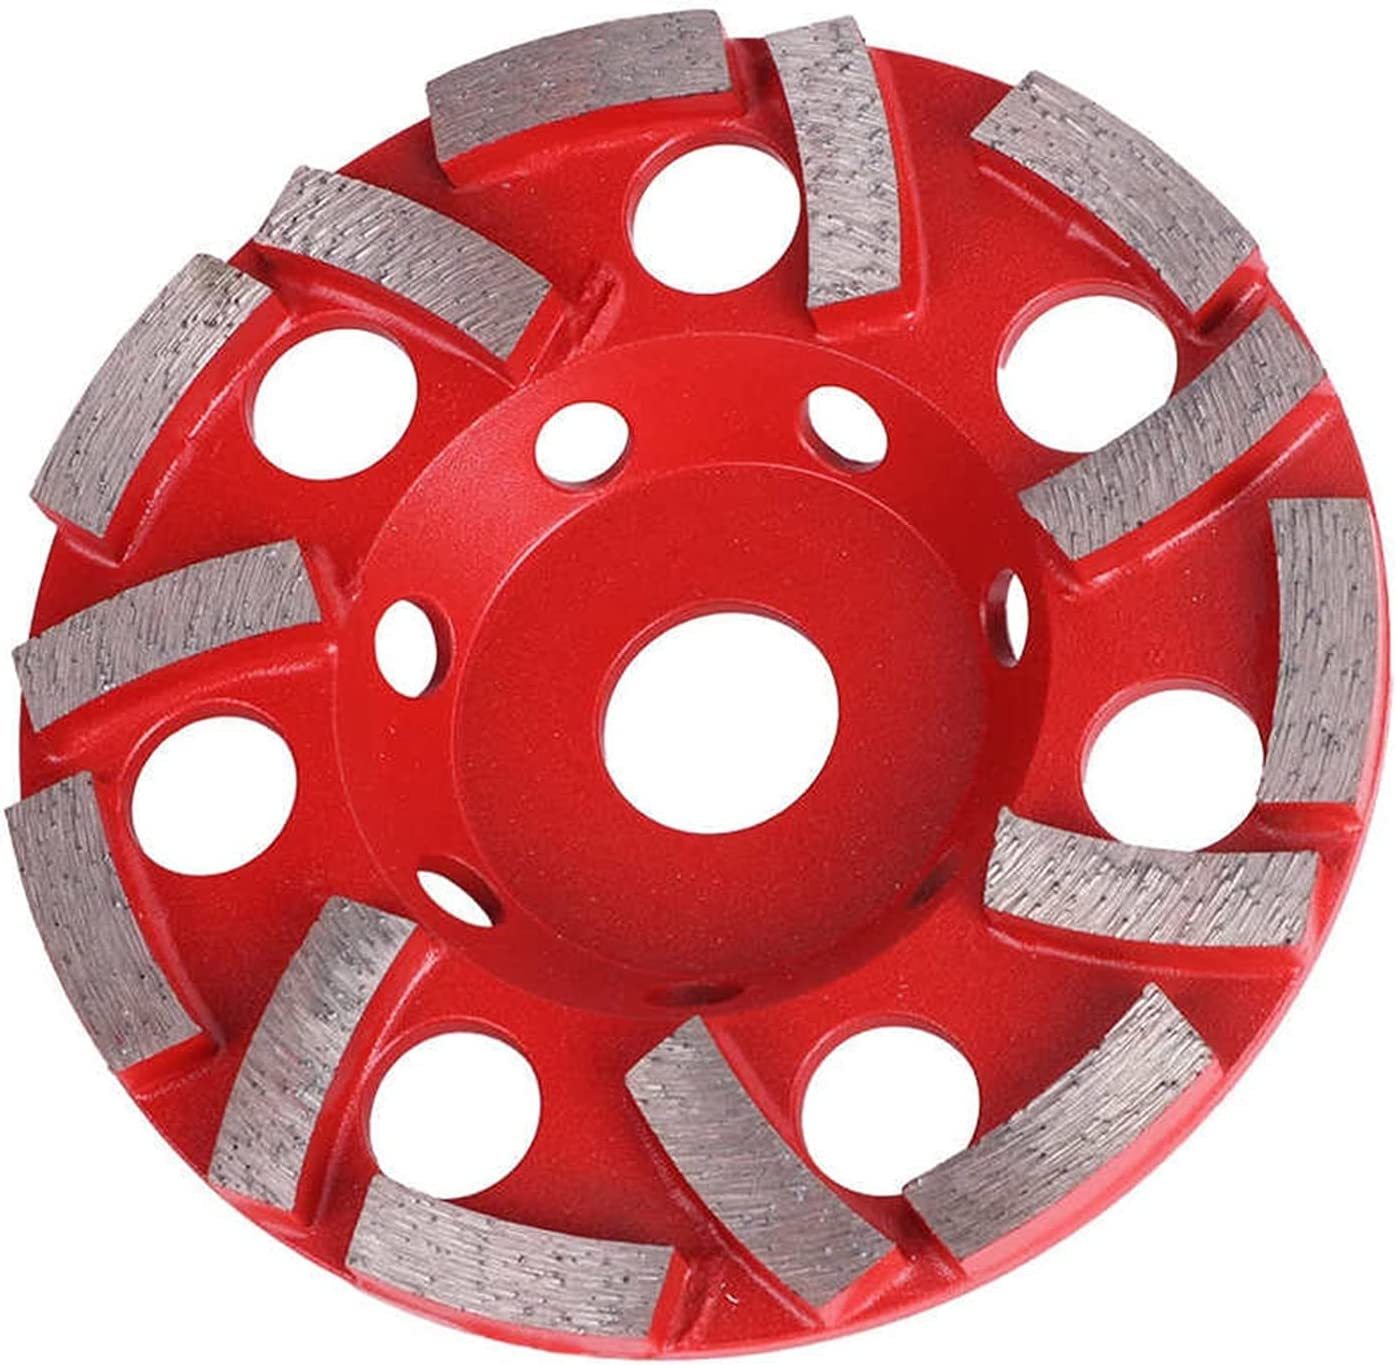 WYDMBH Cutting wheele Sales for sale 125mm 4.9in 14 Wheel Challenge the lowest price Diamond Grinding Cup